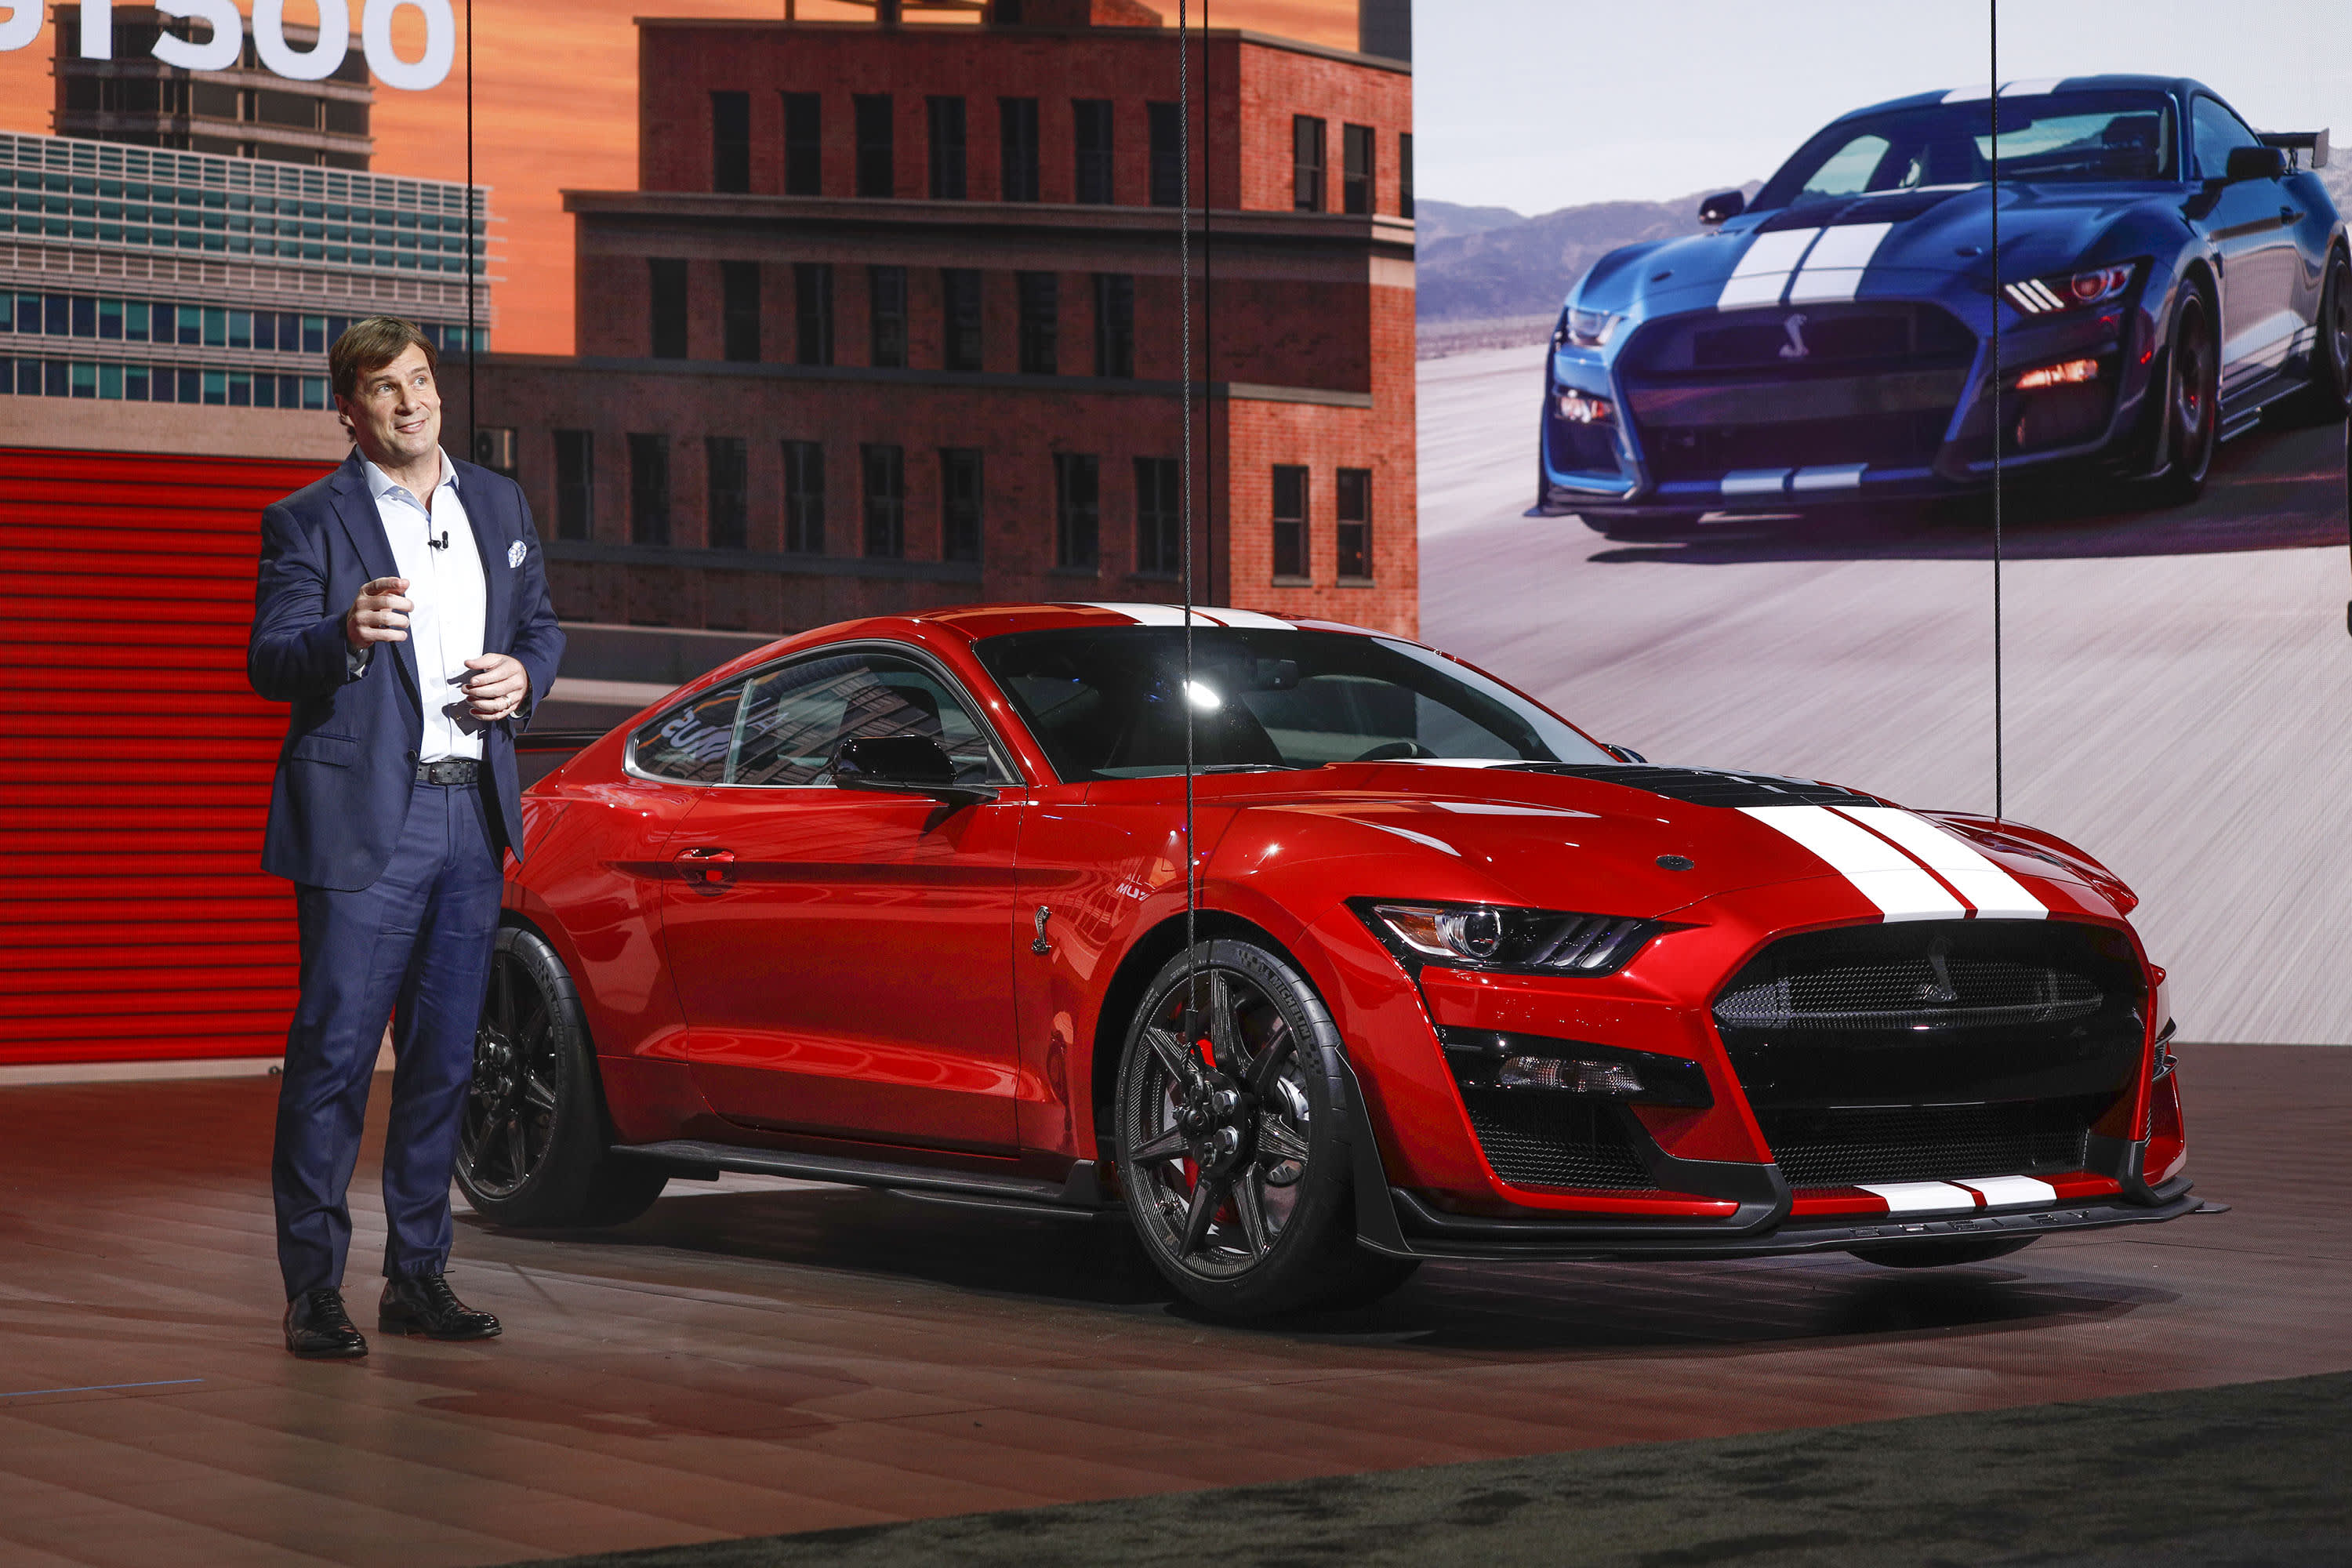 Ford's COO to receive $2.5 million in shares if not selected as CEO